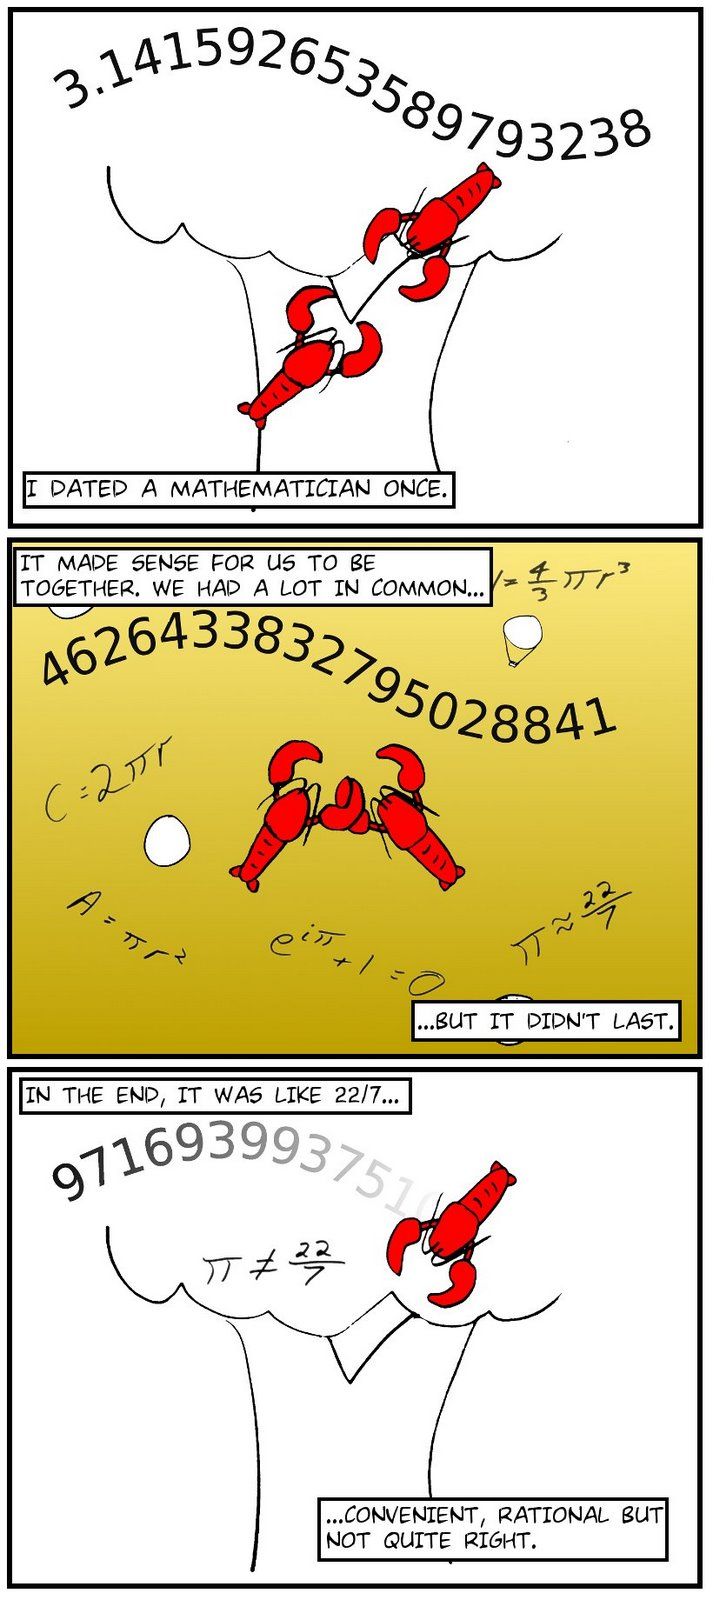 I DATED A MATHEMATICIAN ONCE.  IT MADE SENSE FOR US TO BE TOGETHER. WE HAD A LOT IN COMMON... ...BUT IT DIDN'T LAST. IN THE END, IT WAS LIKE 22/7... ...CONVENIENT, RATIONAL BUT NOT QUITE RIGHT.